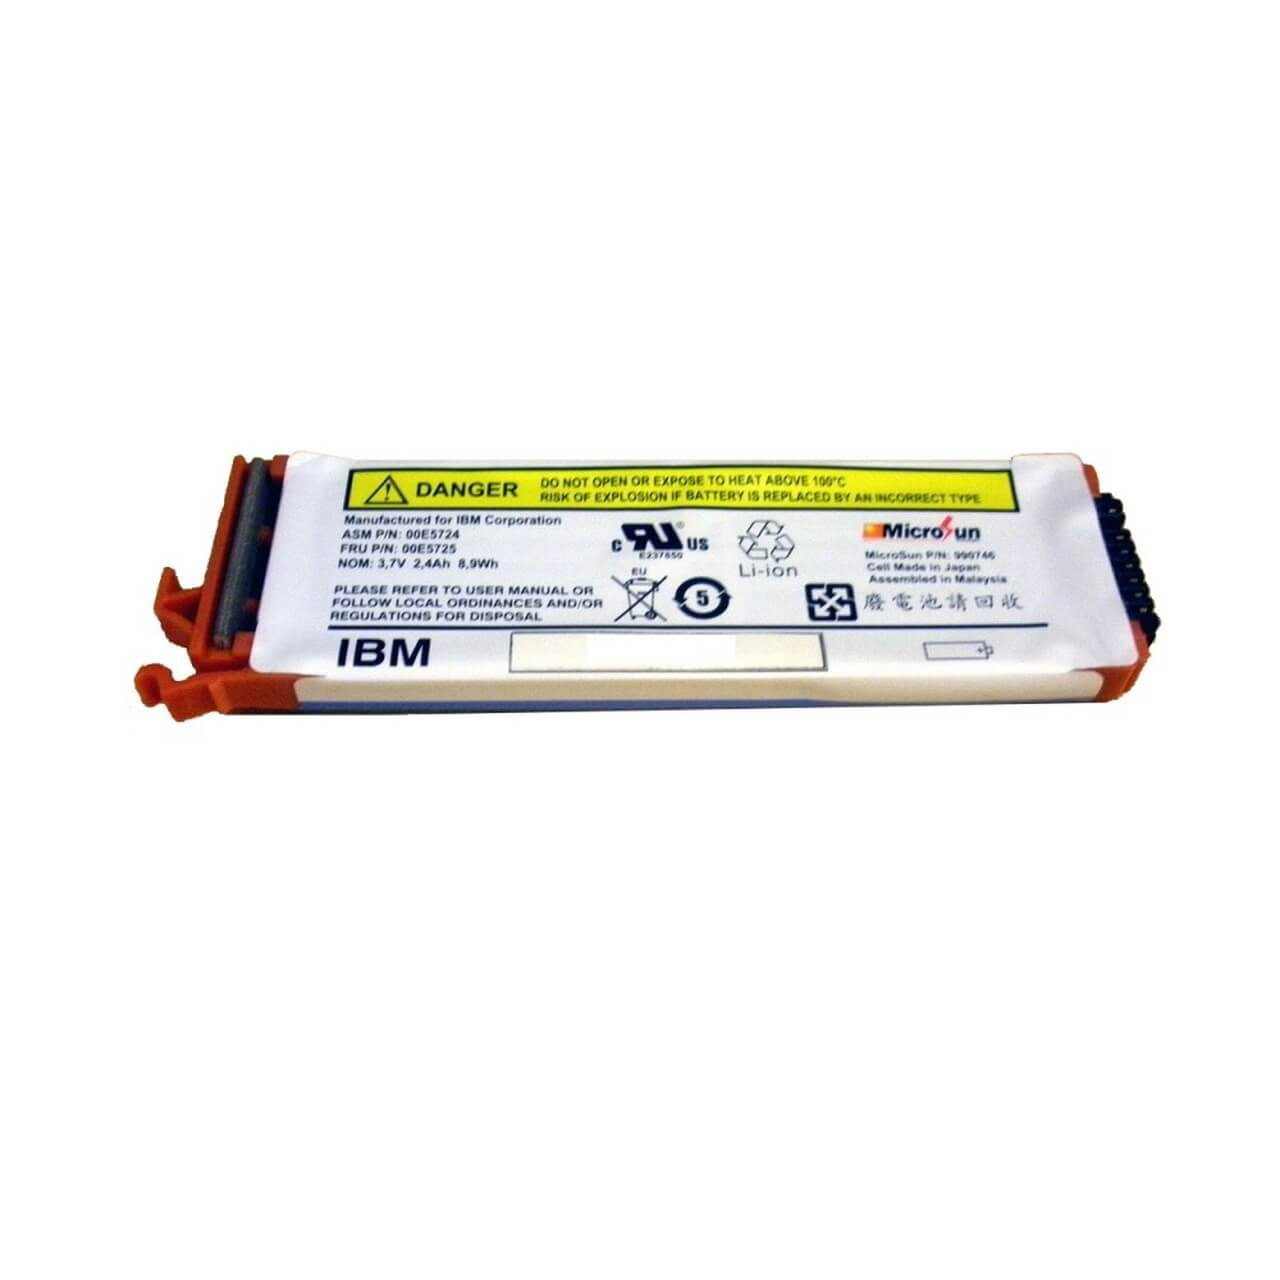 Buy & save on IBM Lead Acid Battery Cells & IBM Lithium Ion Batteries from your trusted partners at Flagship Technologies.